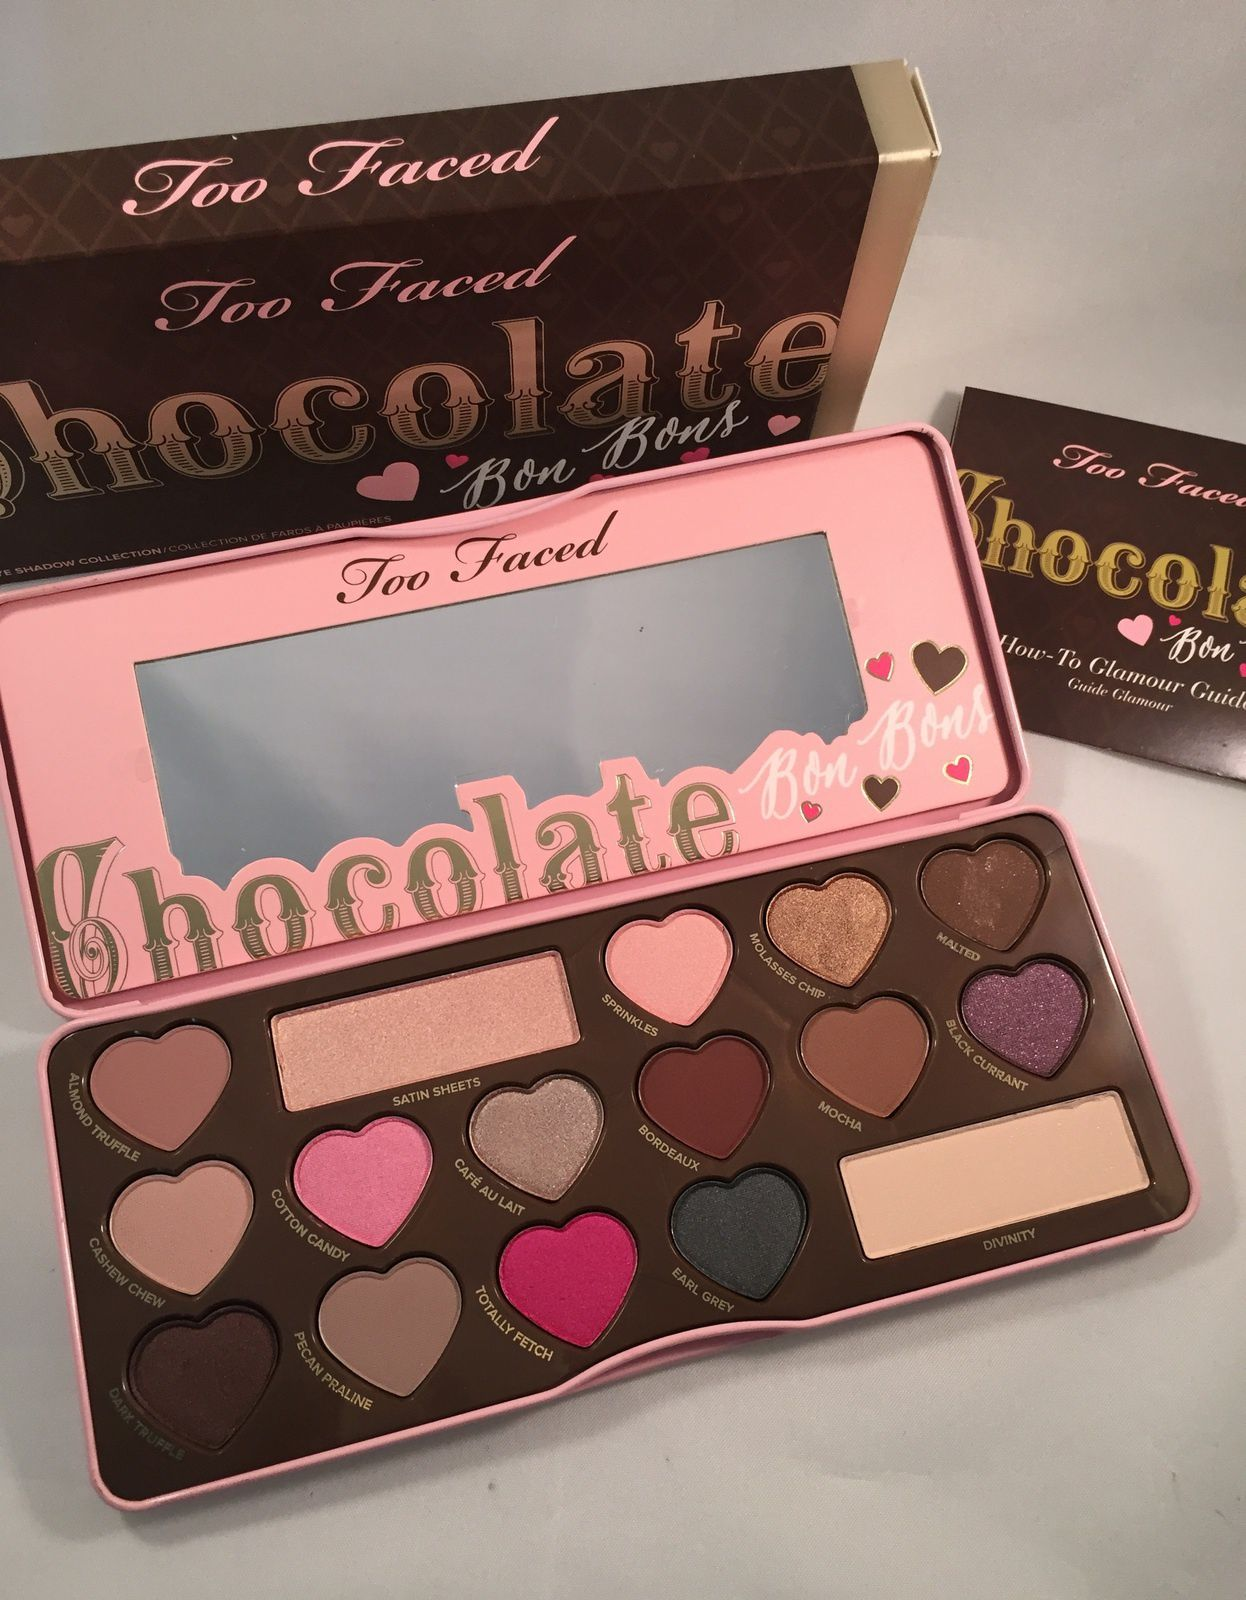 Too Faced - Chocolate Bon Bons